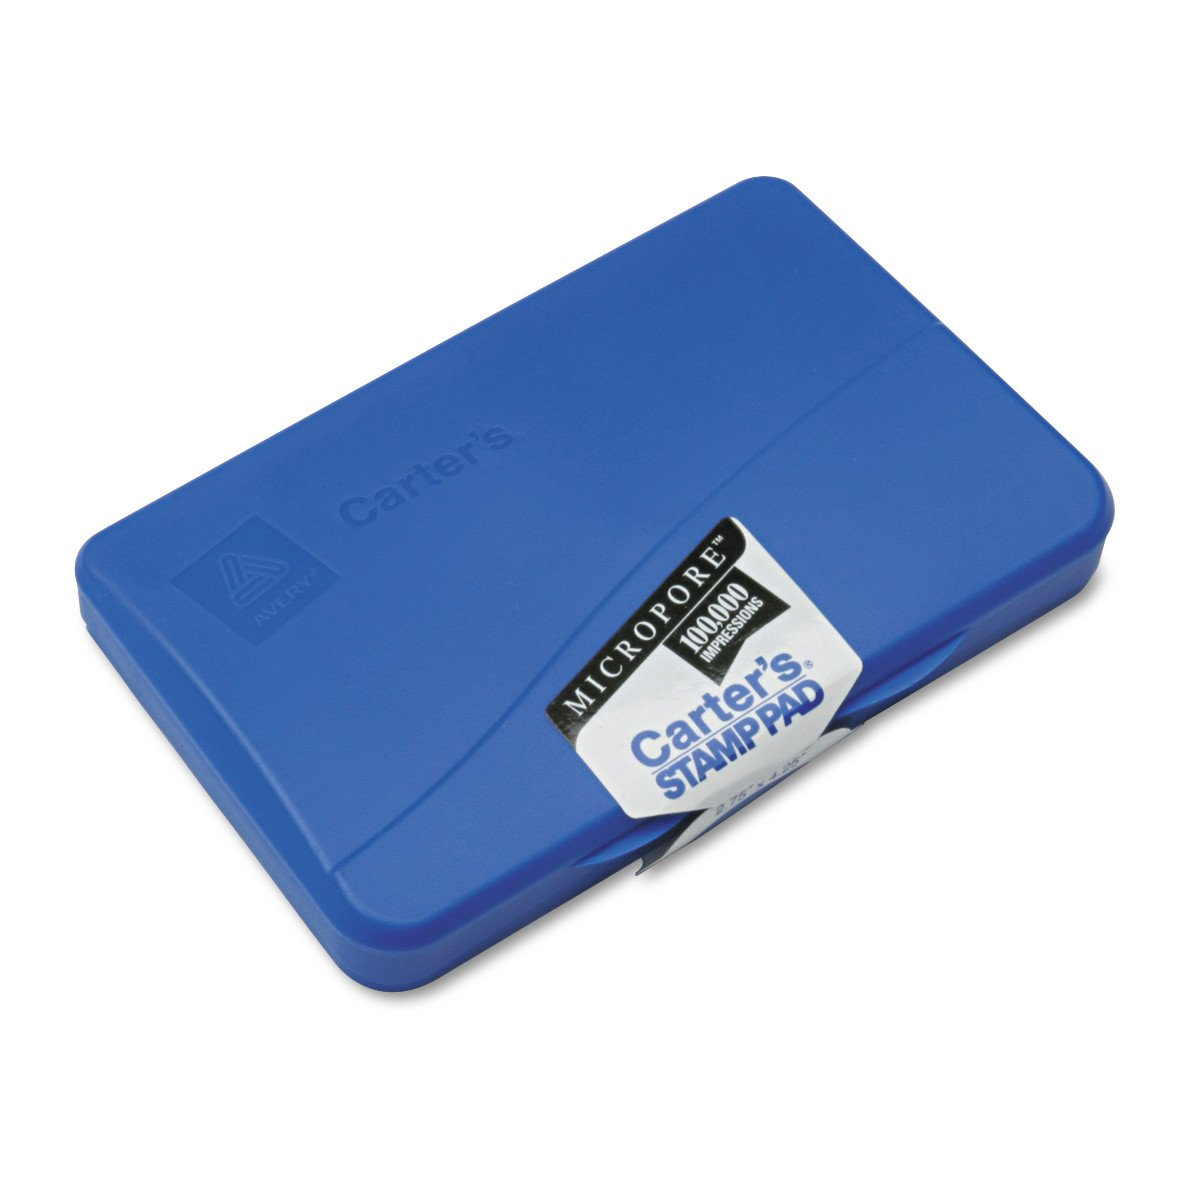 Avery Carters Micropore Stamp Pad 21261 2.75 inch x 4.25 inch Blue